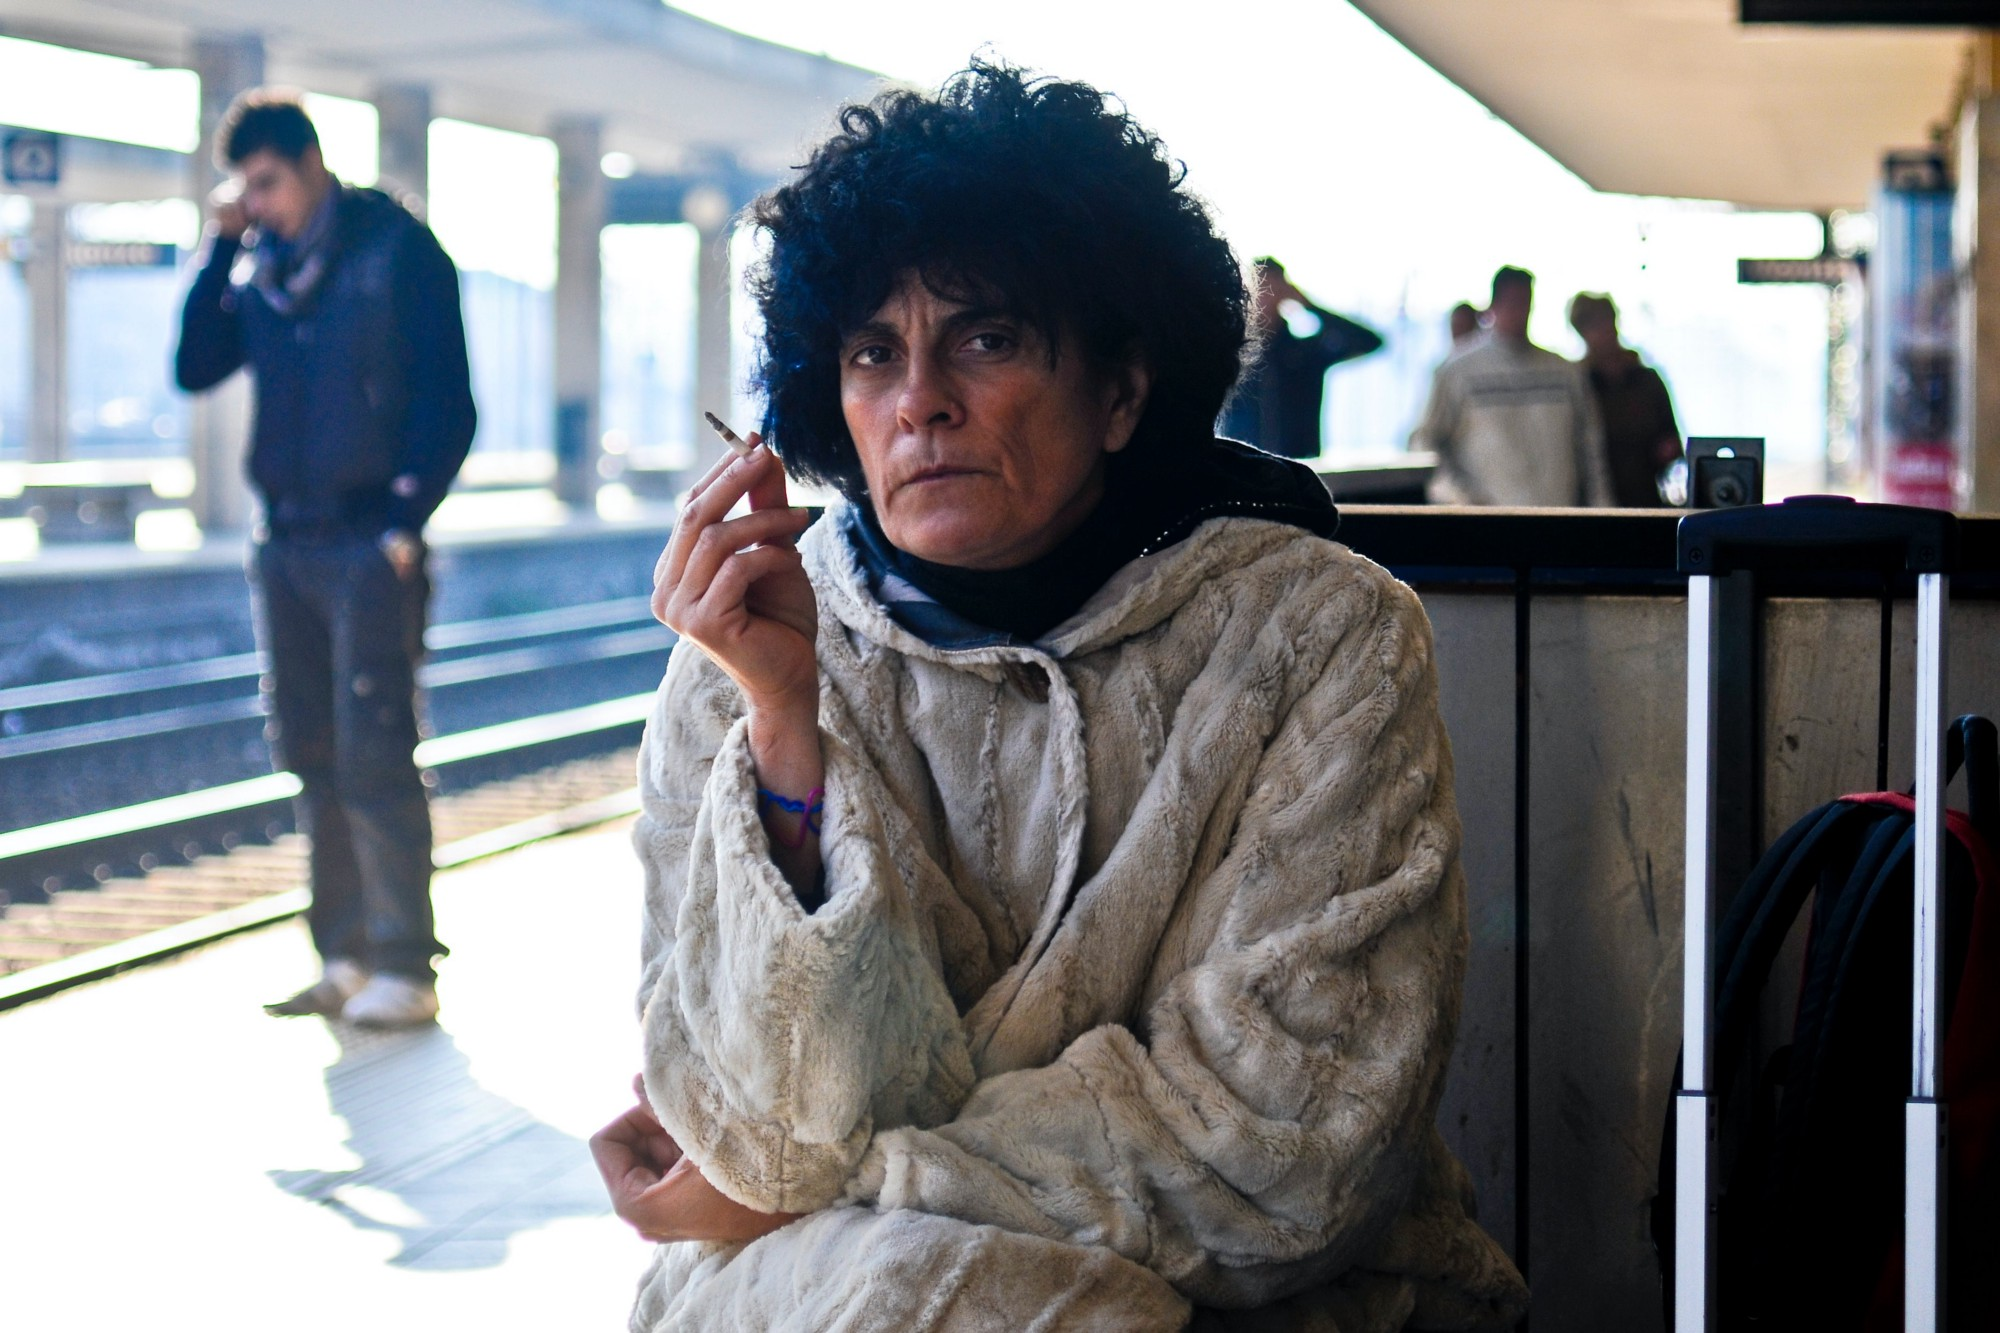 Curly haired woman in a sweater sitting at a train station smoking a cigarette and staring into the camera